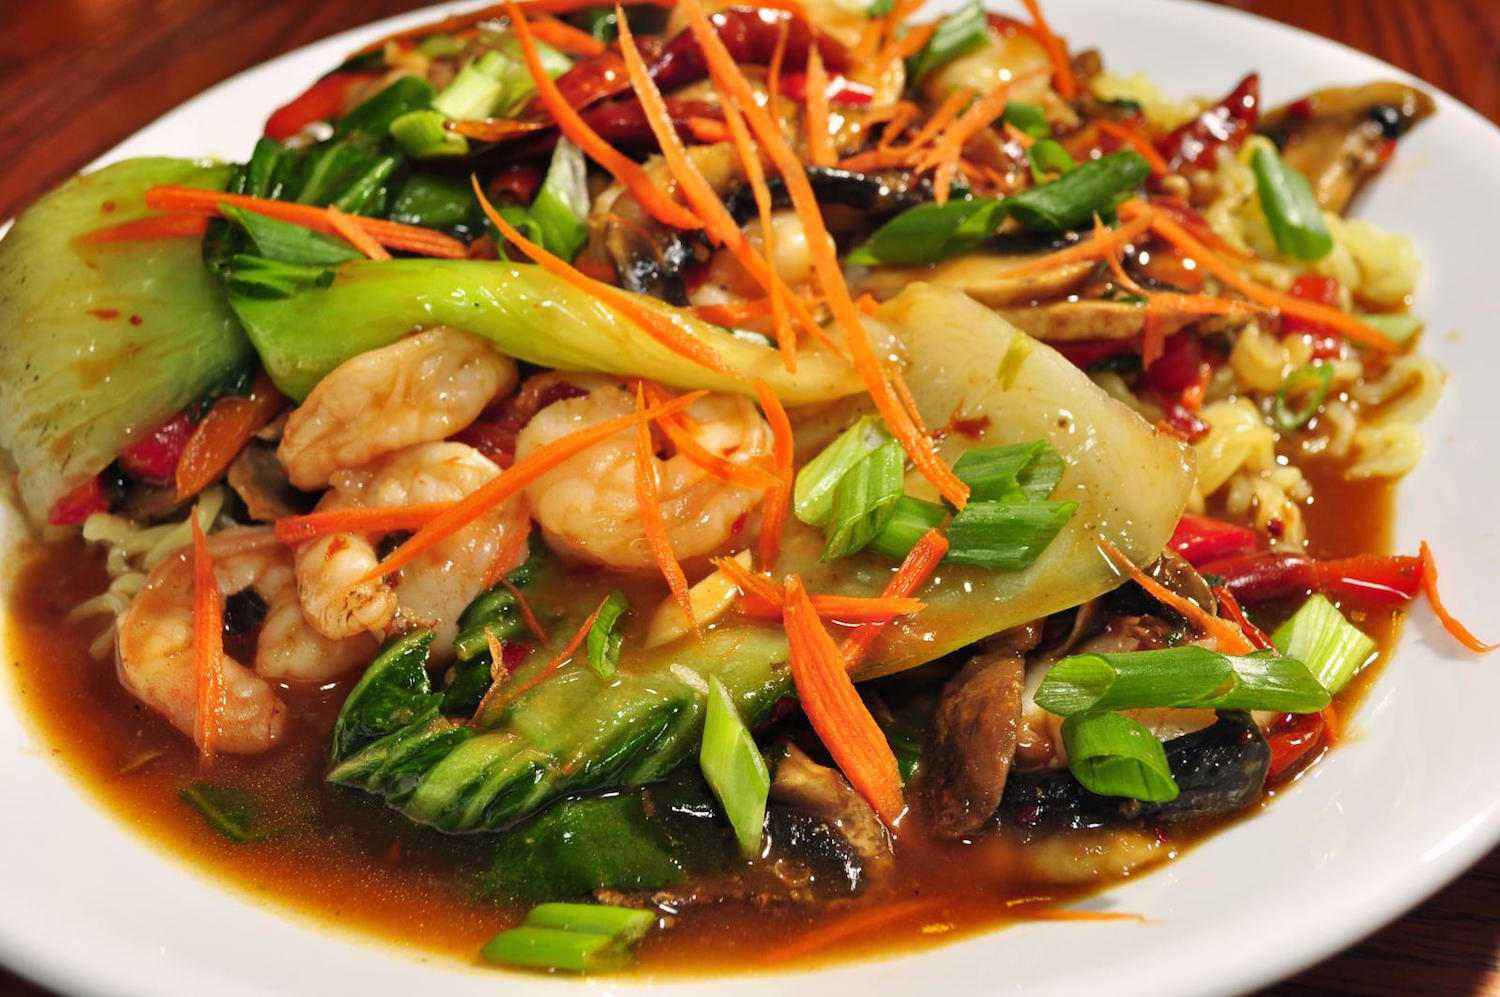 Shrimp With Chinese Greens Stir fry